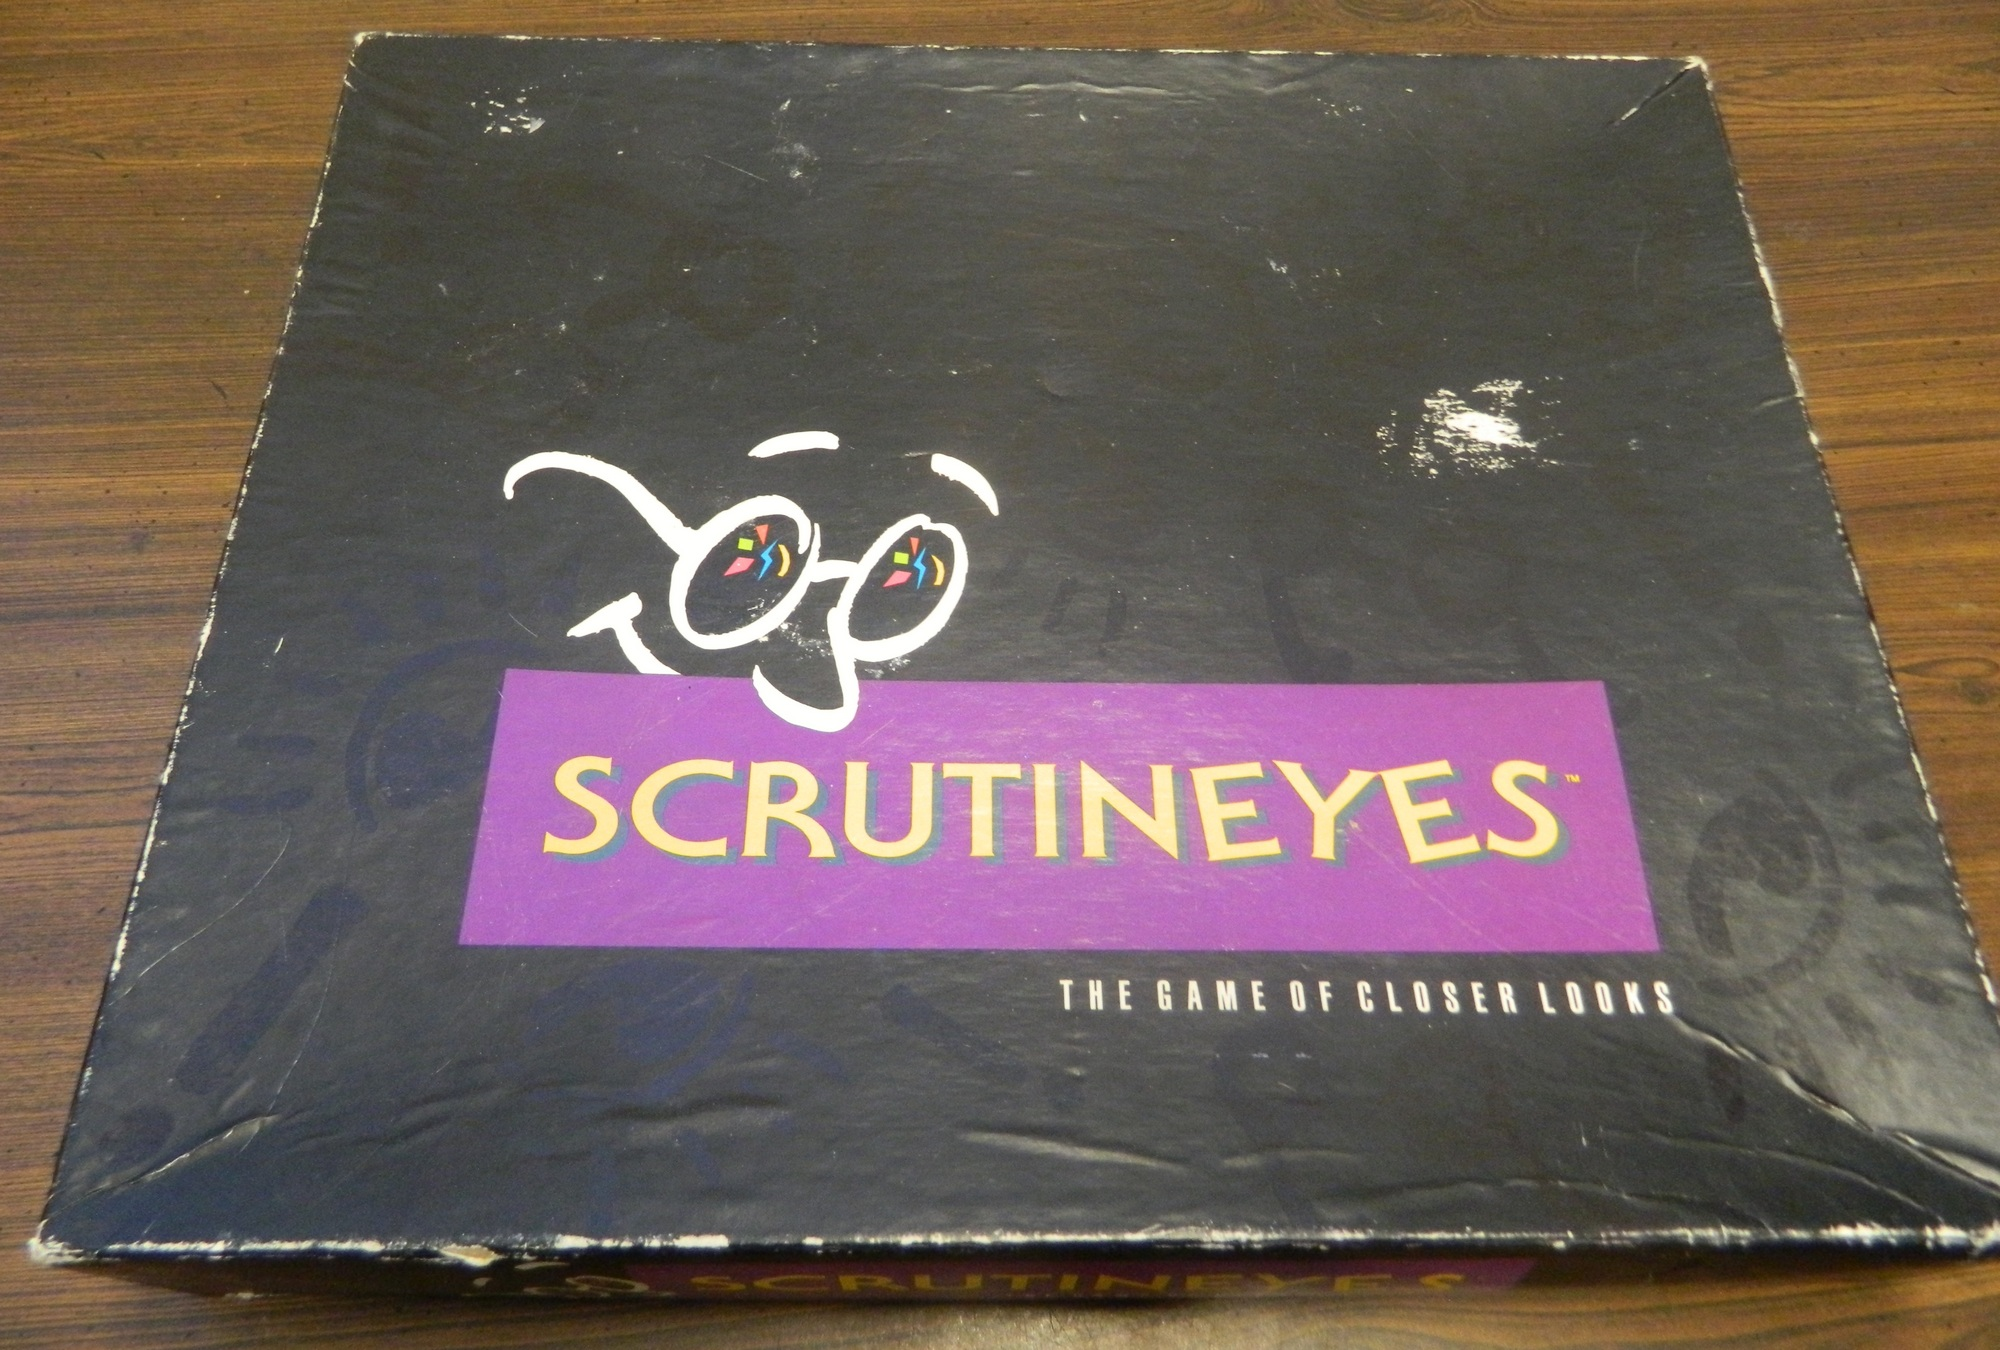 Box for Scrutineyes